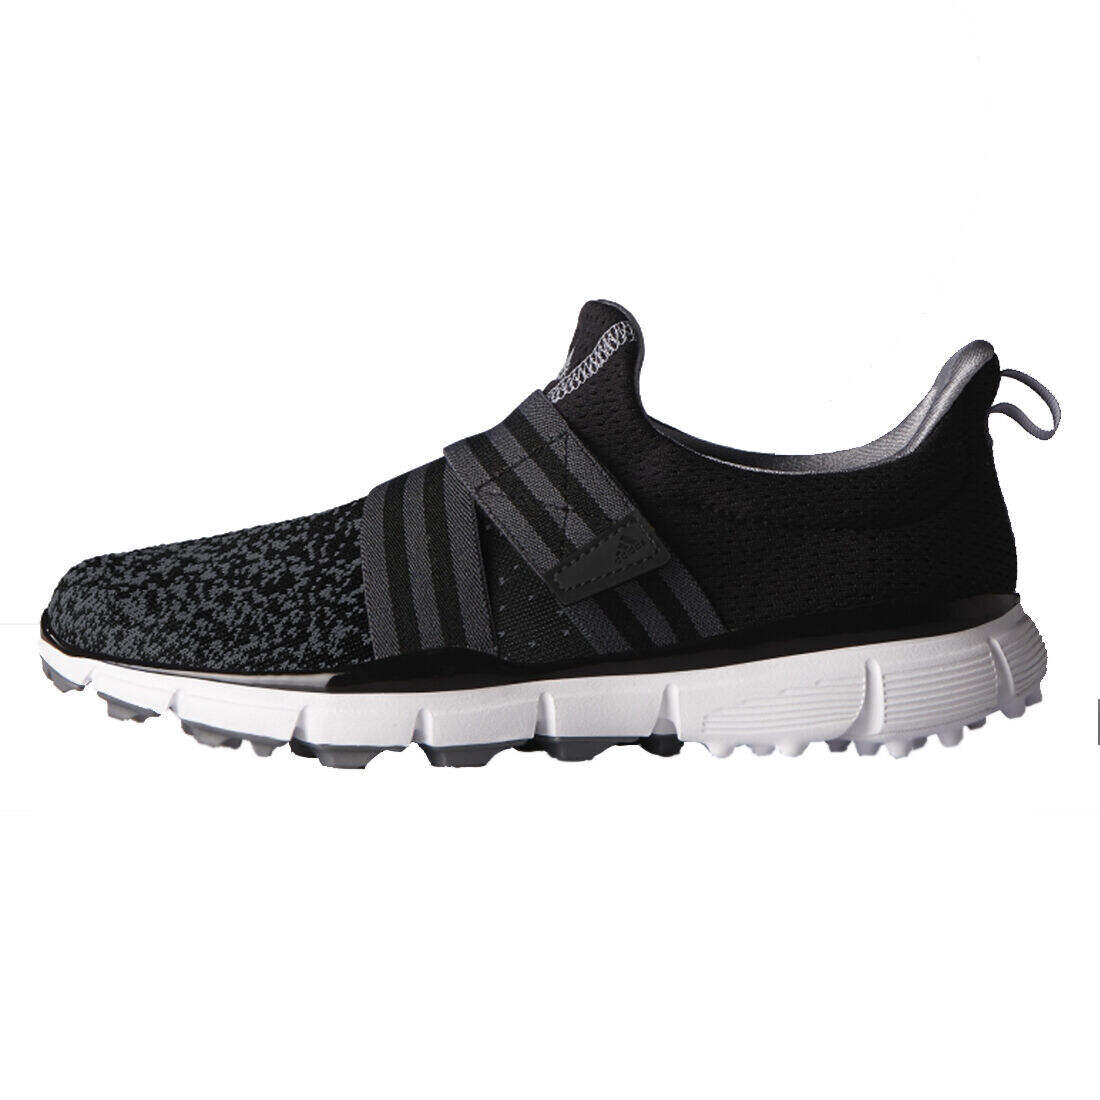 adidas climacool knit golf shoes